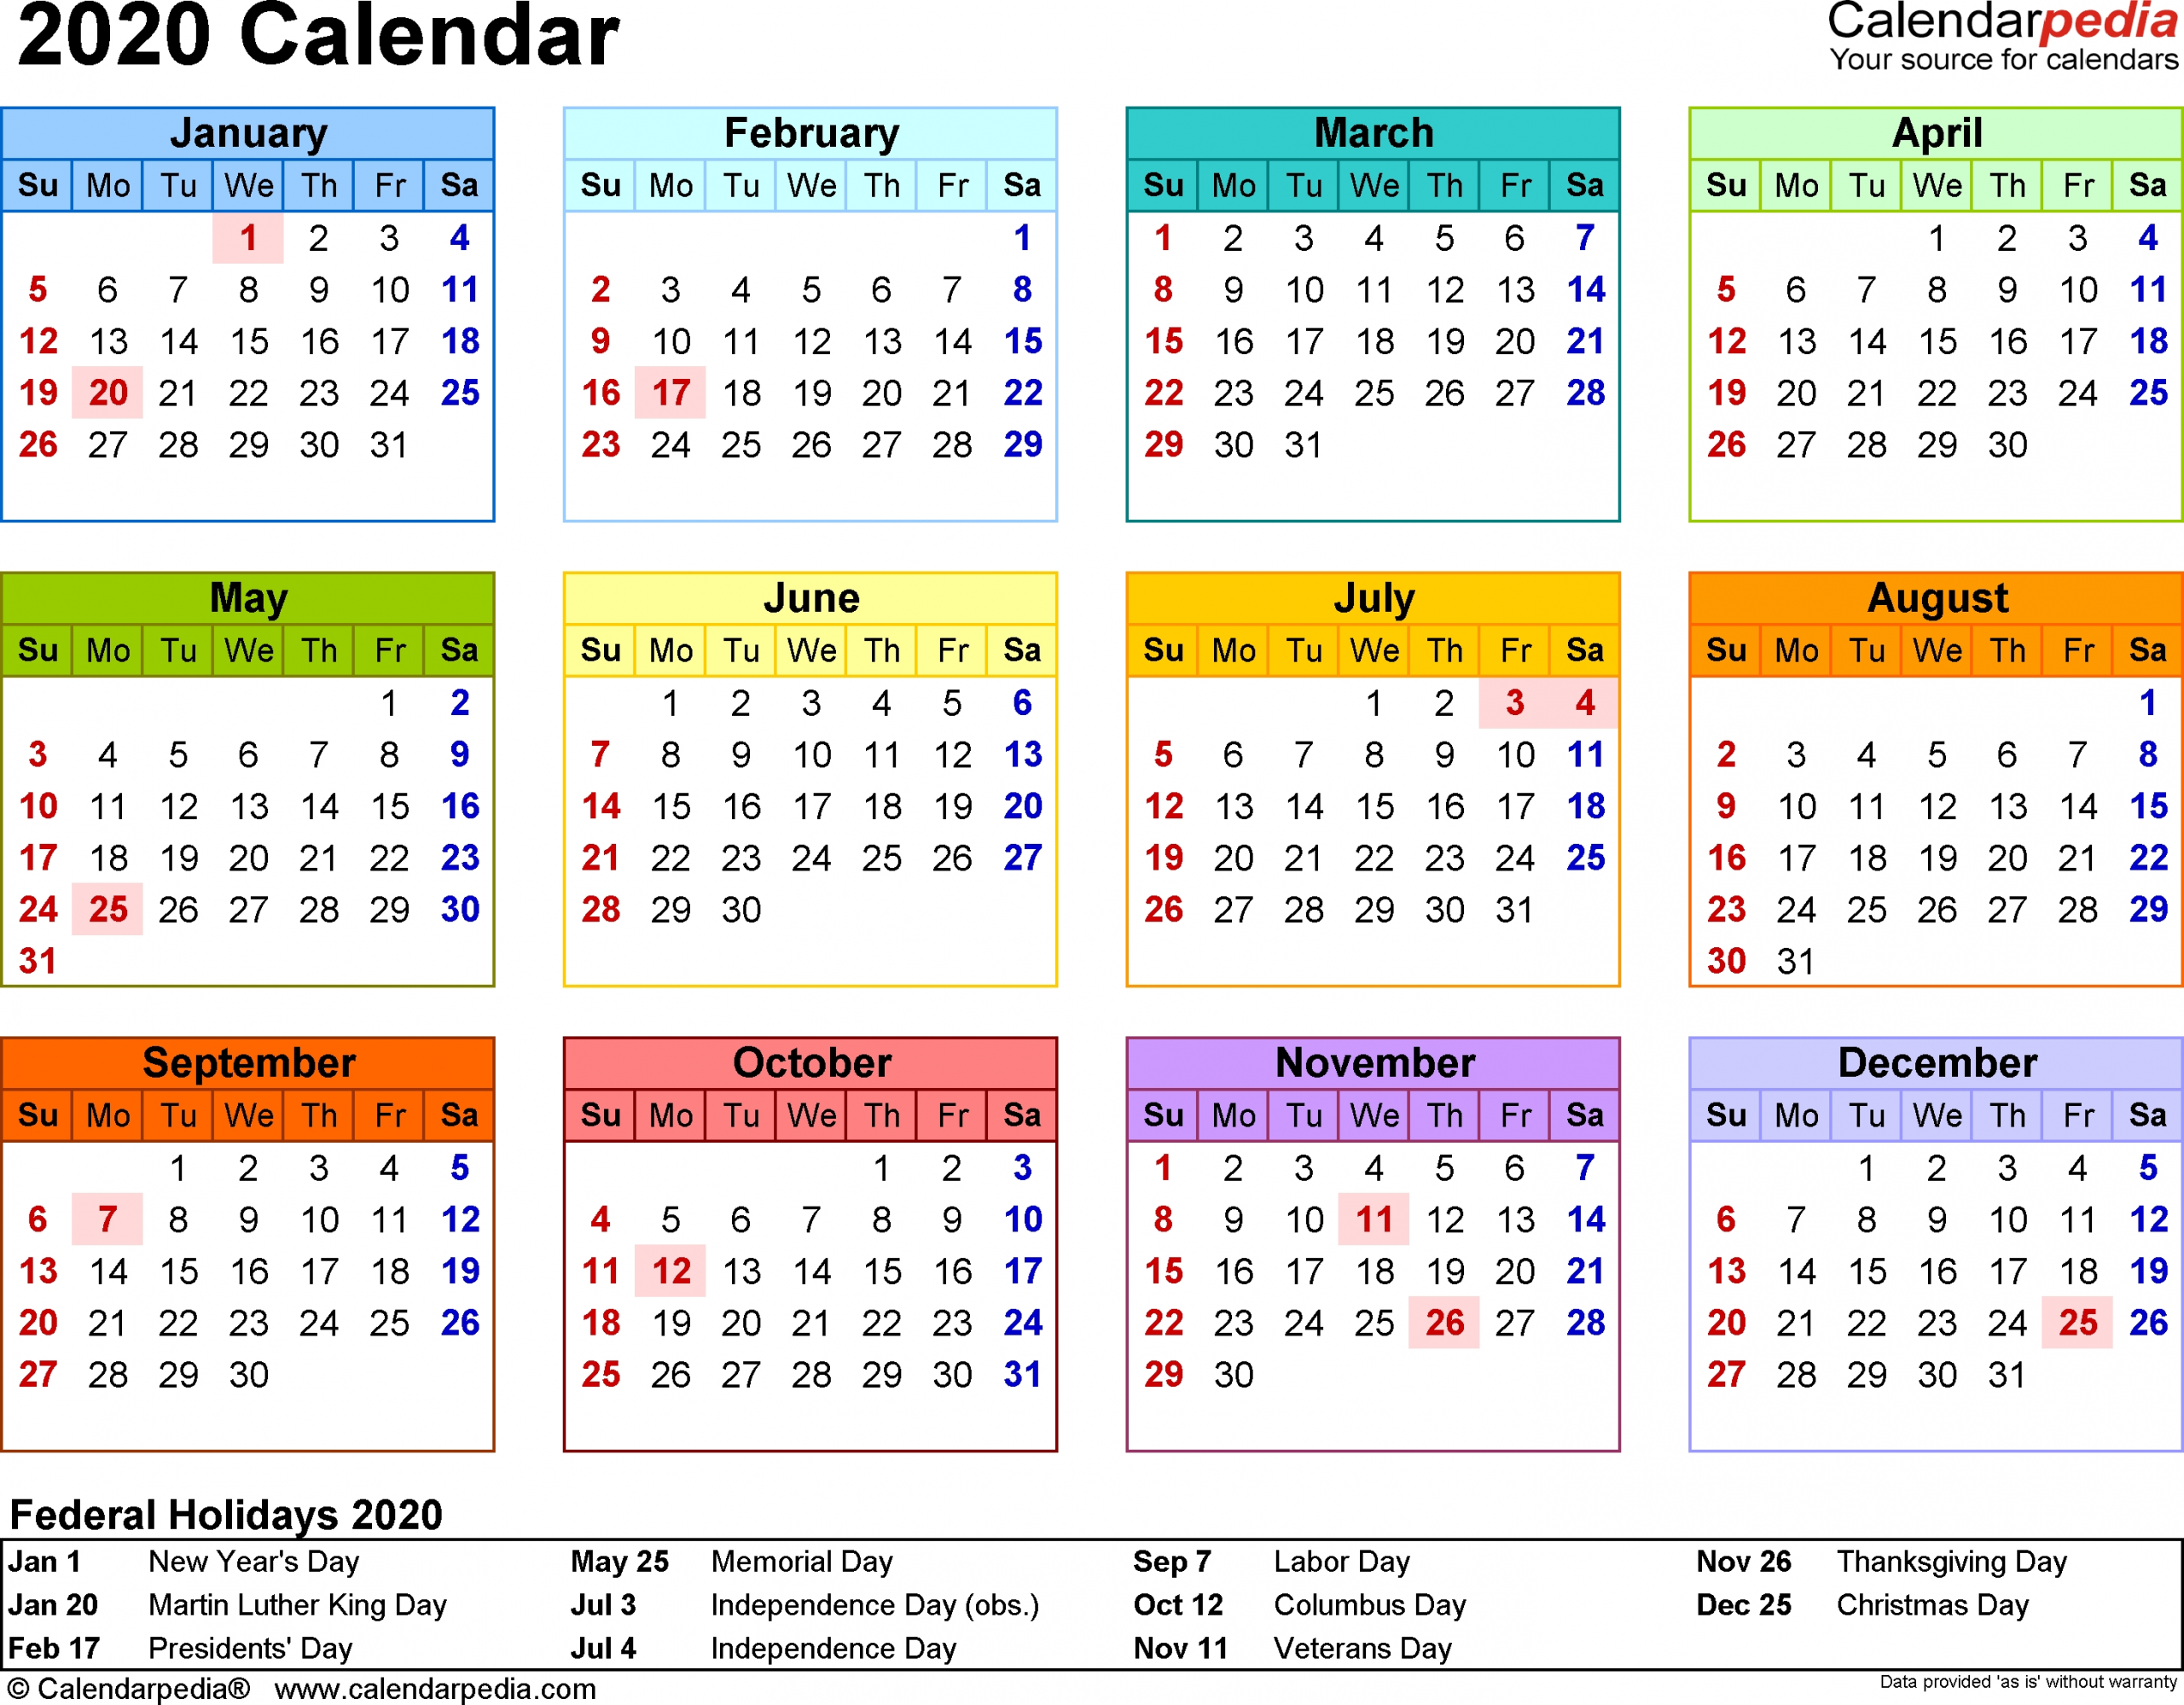 Excel 2021 Calendar Drop Down | Printable Calendar 2020-2021